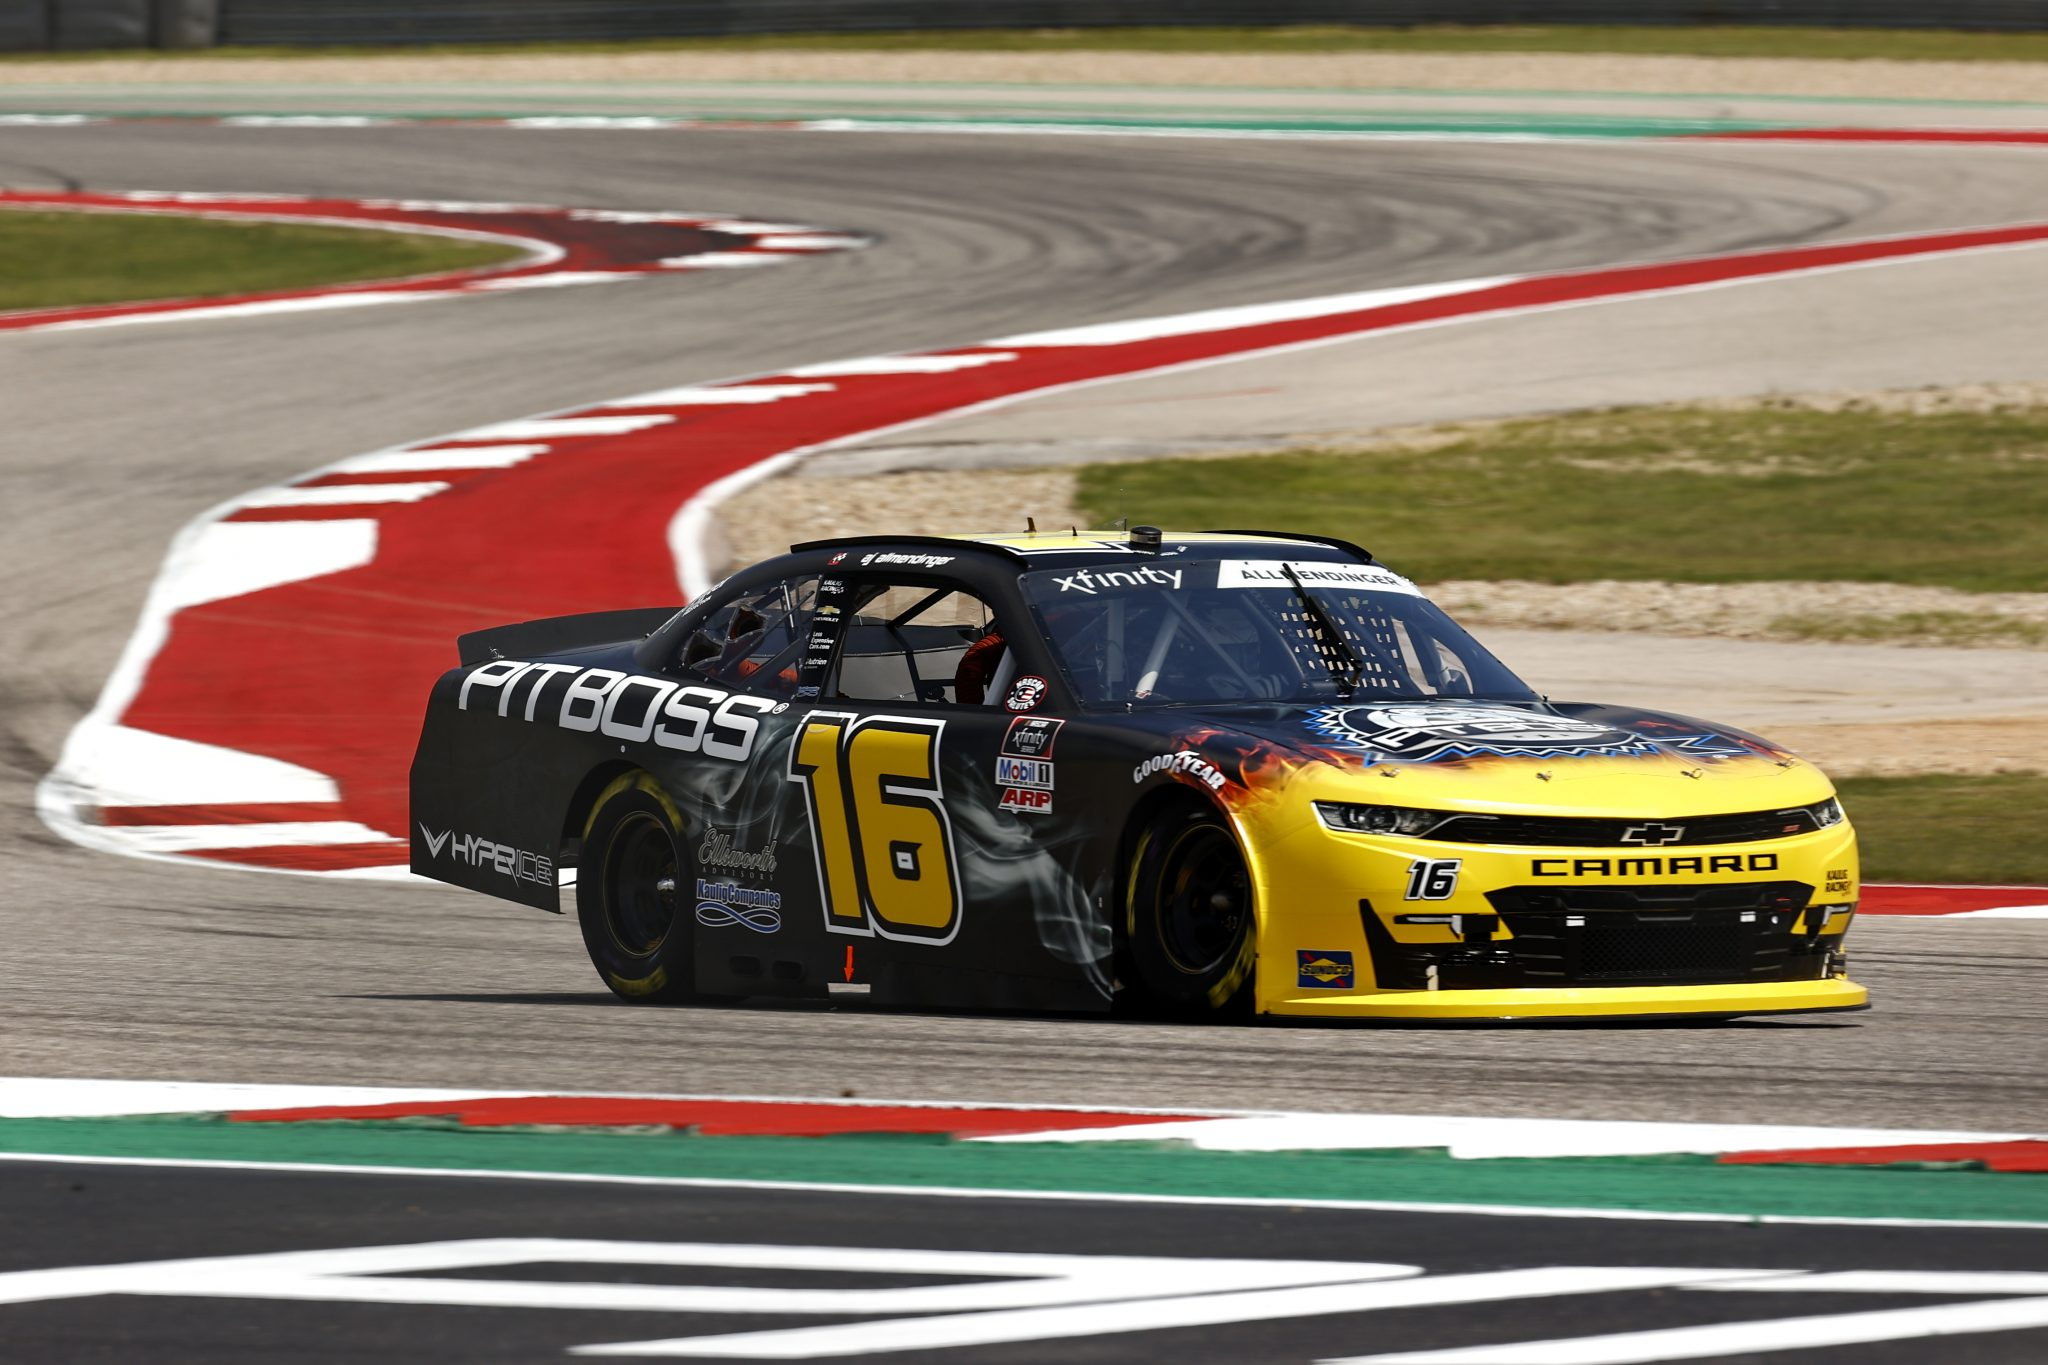 AUSTIN, TEXAS - MAY 21: AJ Allmendinger, driver of the #16 Pit Boss Grills Chevrolet, drives during practice for the NASCAR Xfinity Series Pit Boss 250 at Circuit of The Americas on May 21, 2021 in Austin, Texas. (Photo by Jared C. Tilton/Getty Images) | Getty Images